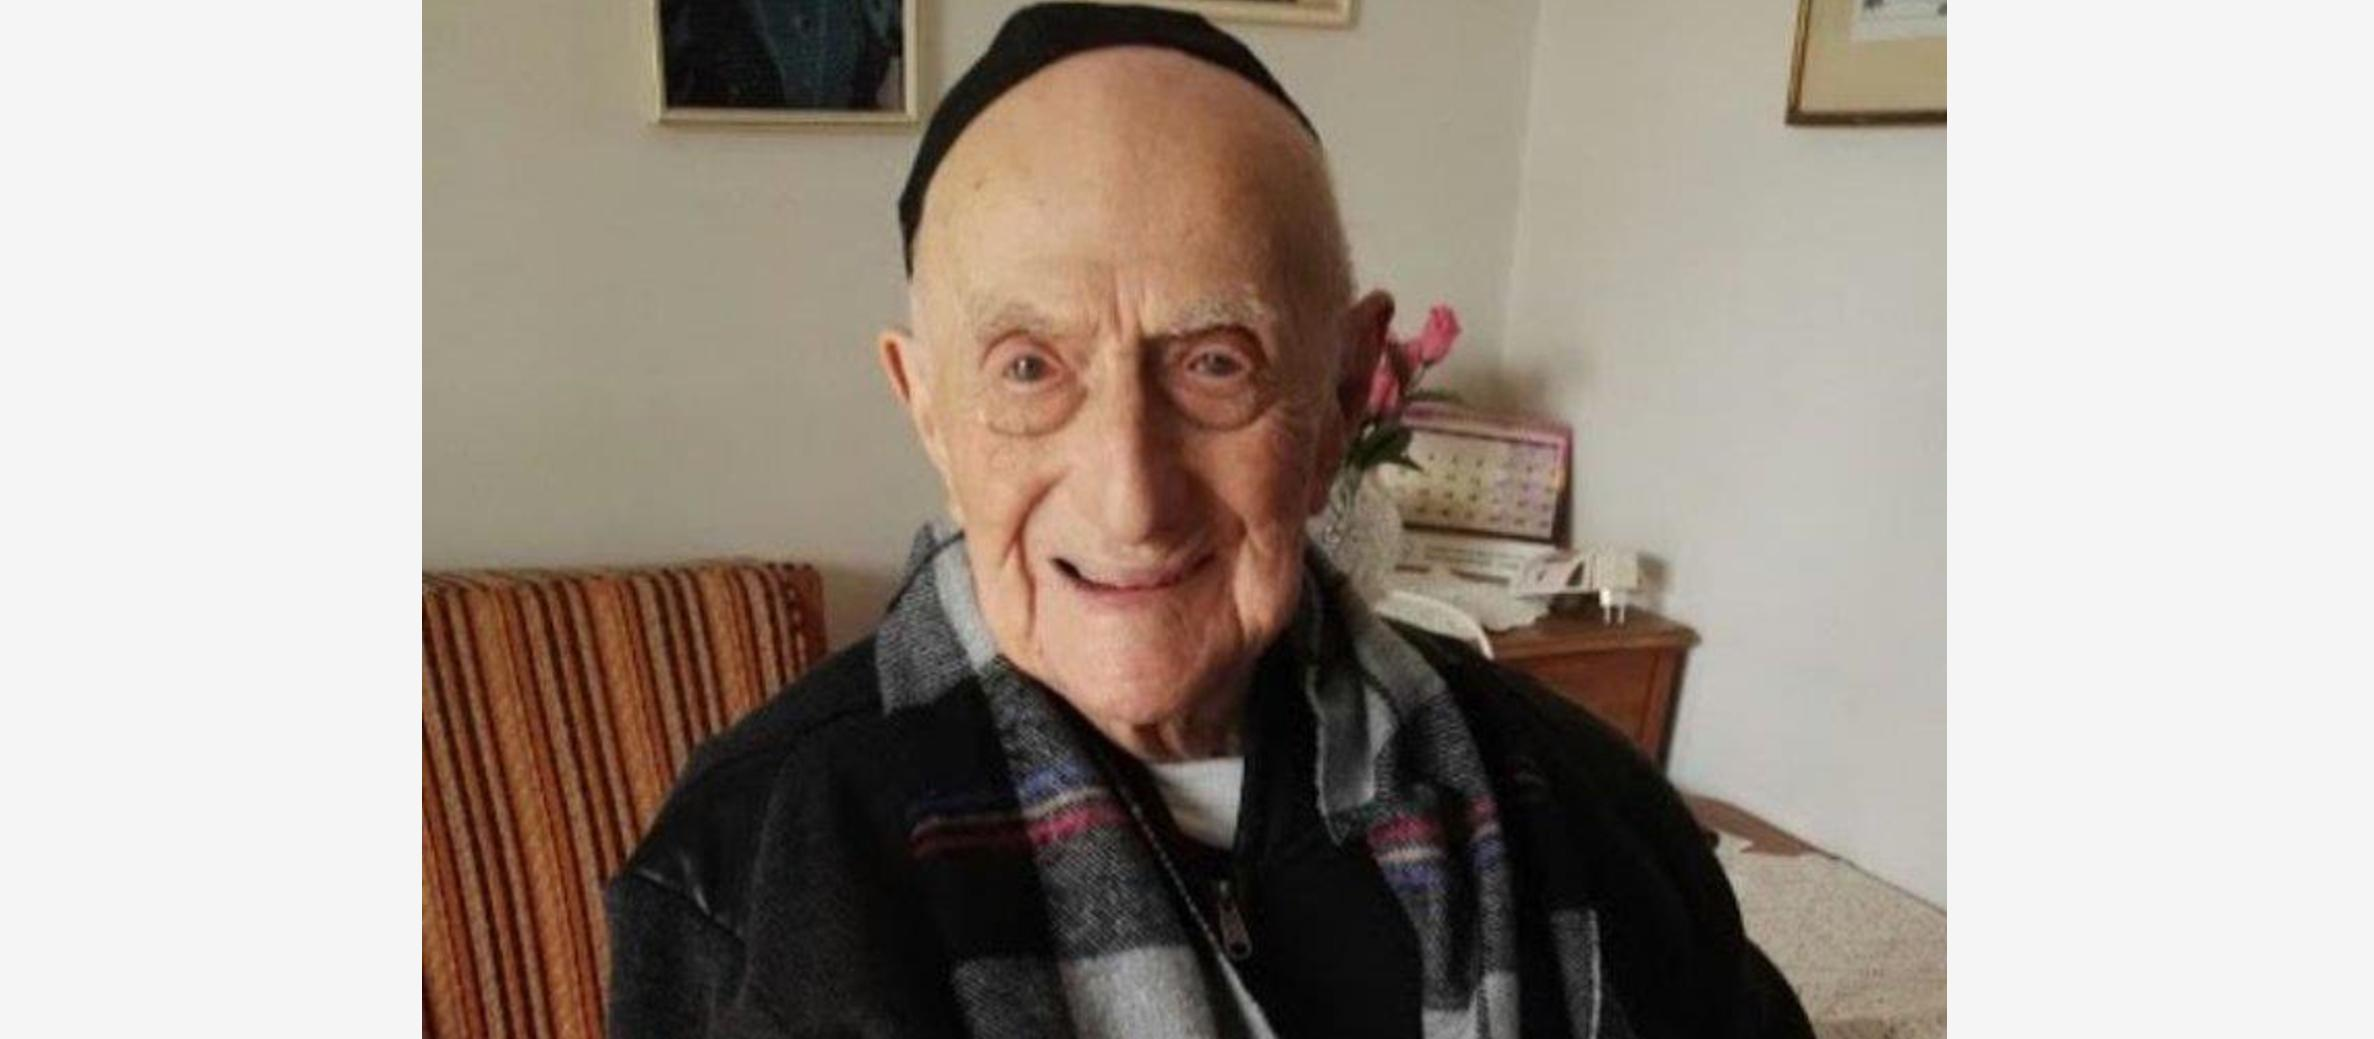 'Saved by God': Jew who survived Holocaust becomes world's oldest man at 112